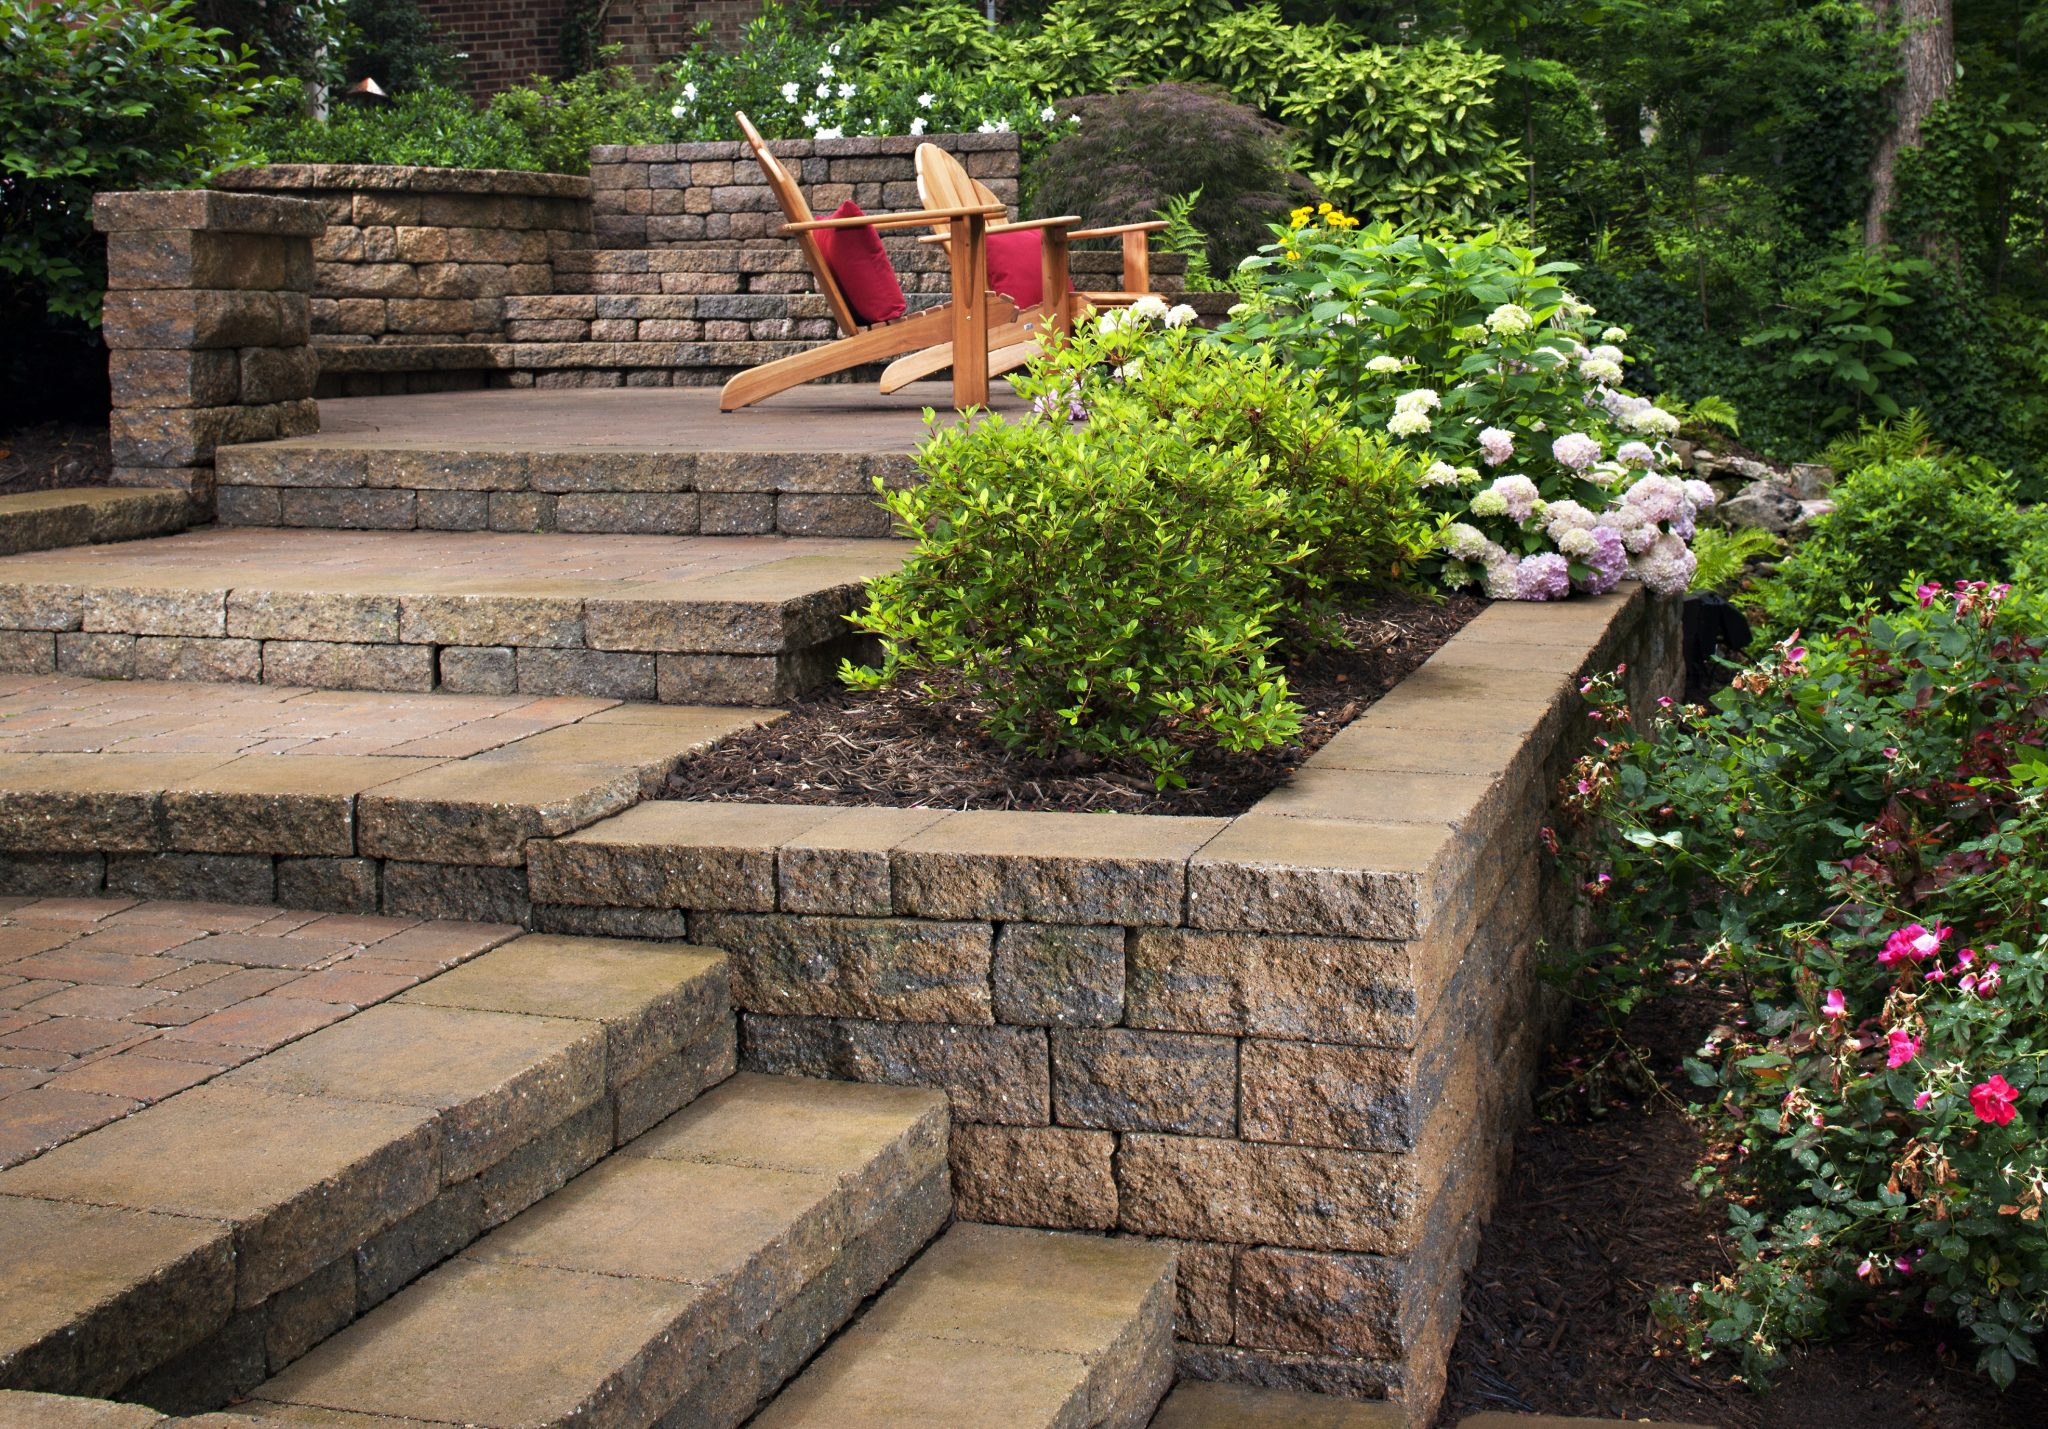 Landscaping Backyard Hill : Landscape ideas for steep backyard hill landscaping